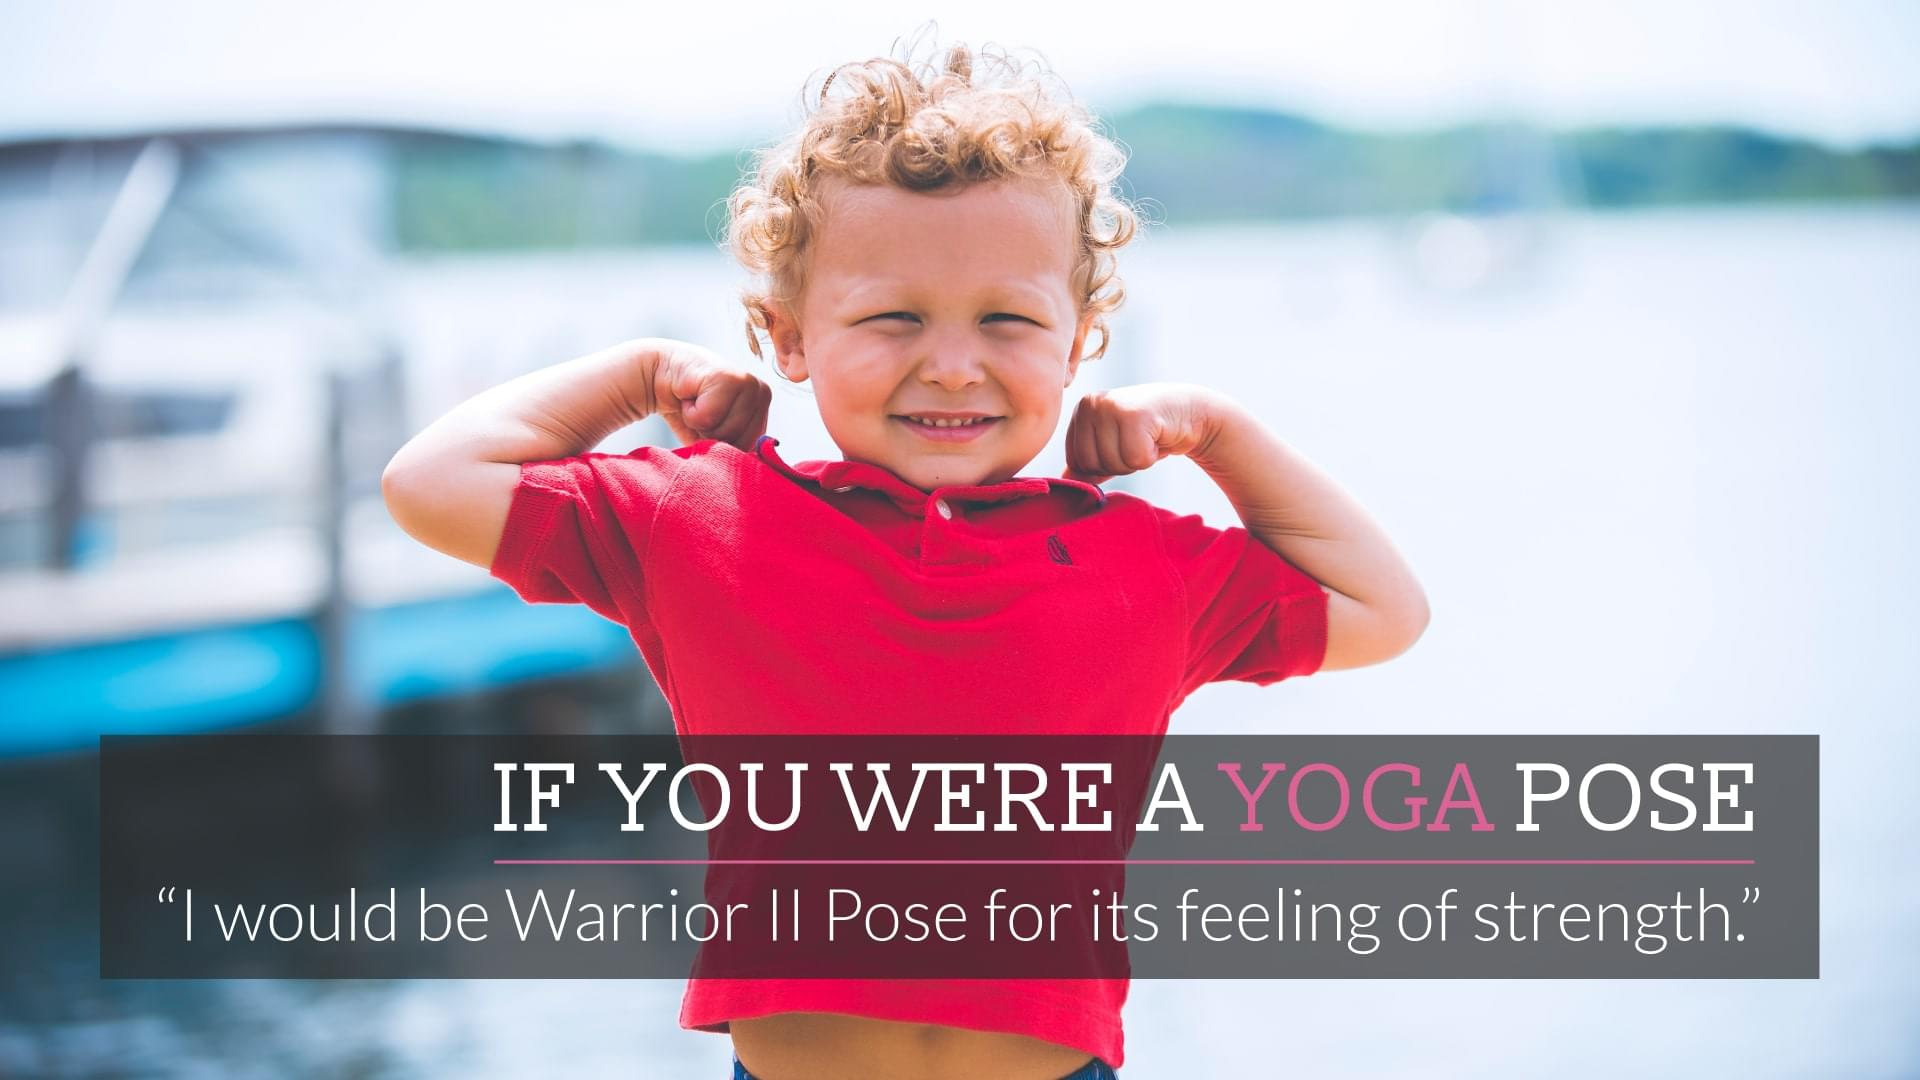 If you were a yoga pose